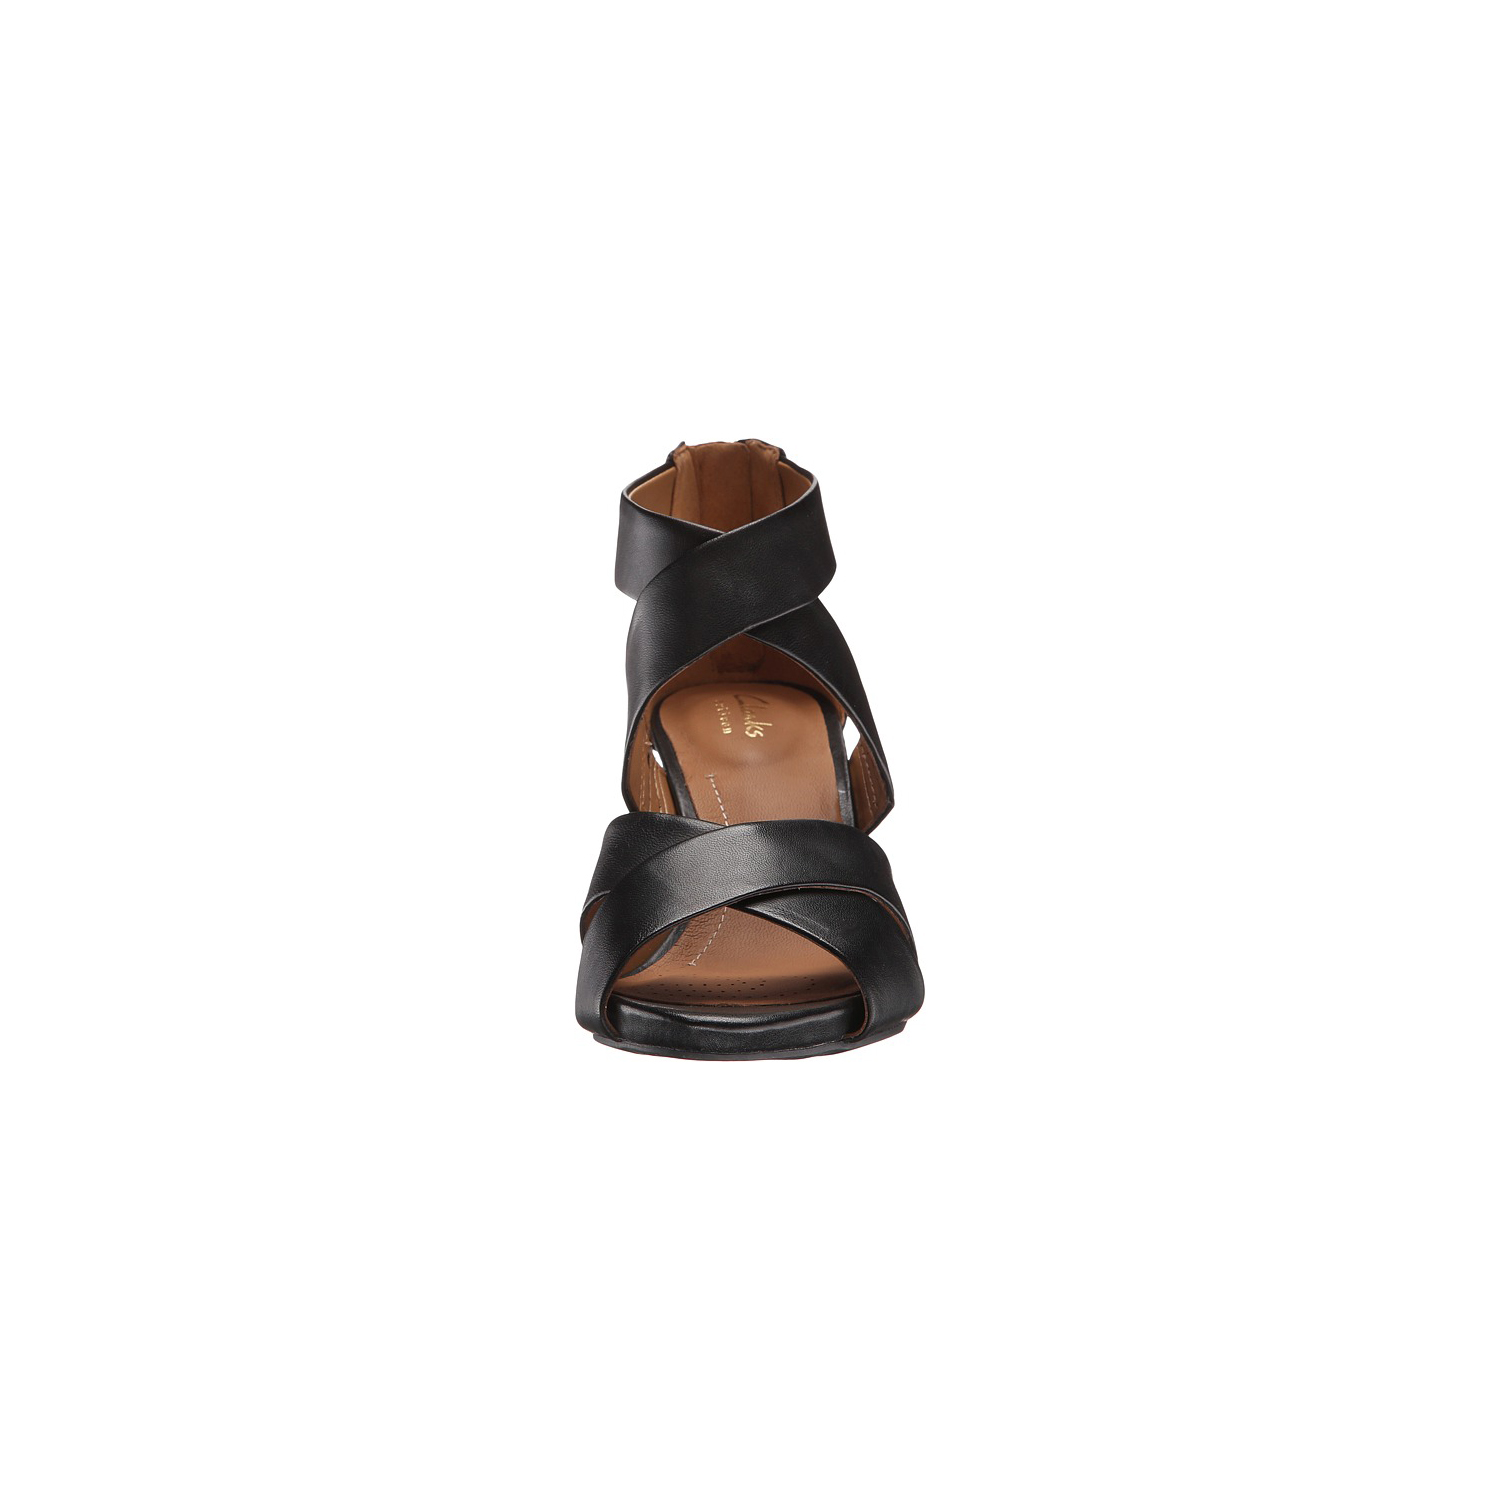 Women's sandals that hide bunions - Trendy Shoes For Bunions Style